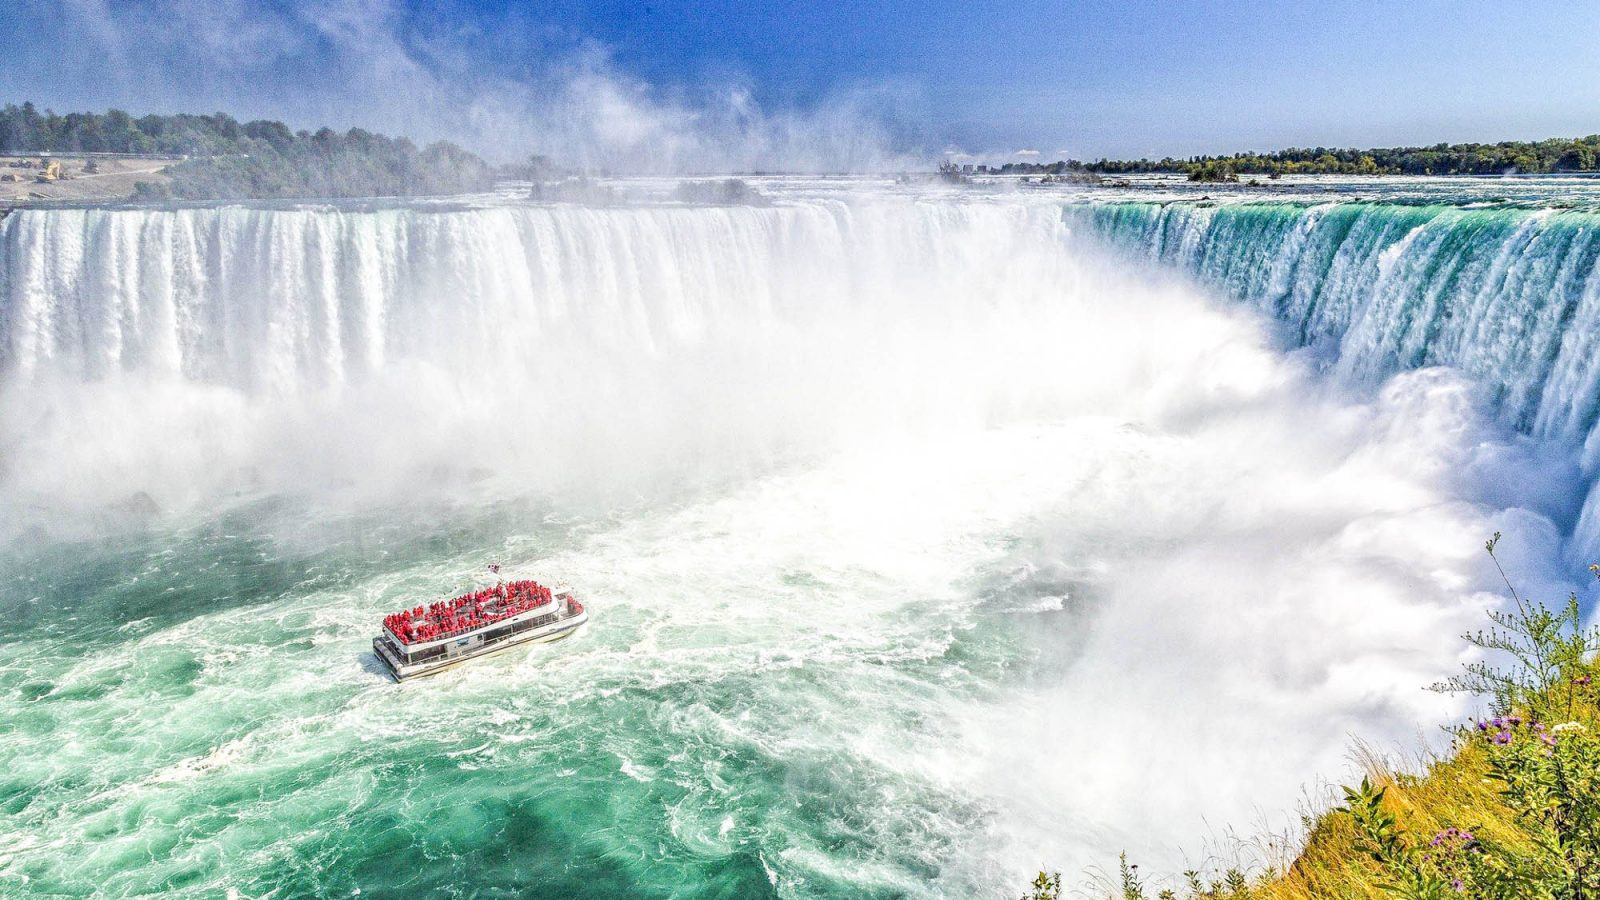 7 of the best niagara falls tours from new york, check out Niagara Falls from the American side, U.S. side. Maid of the Mist tour, jet boat tour, Rainbow Bridge, and more!